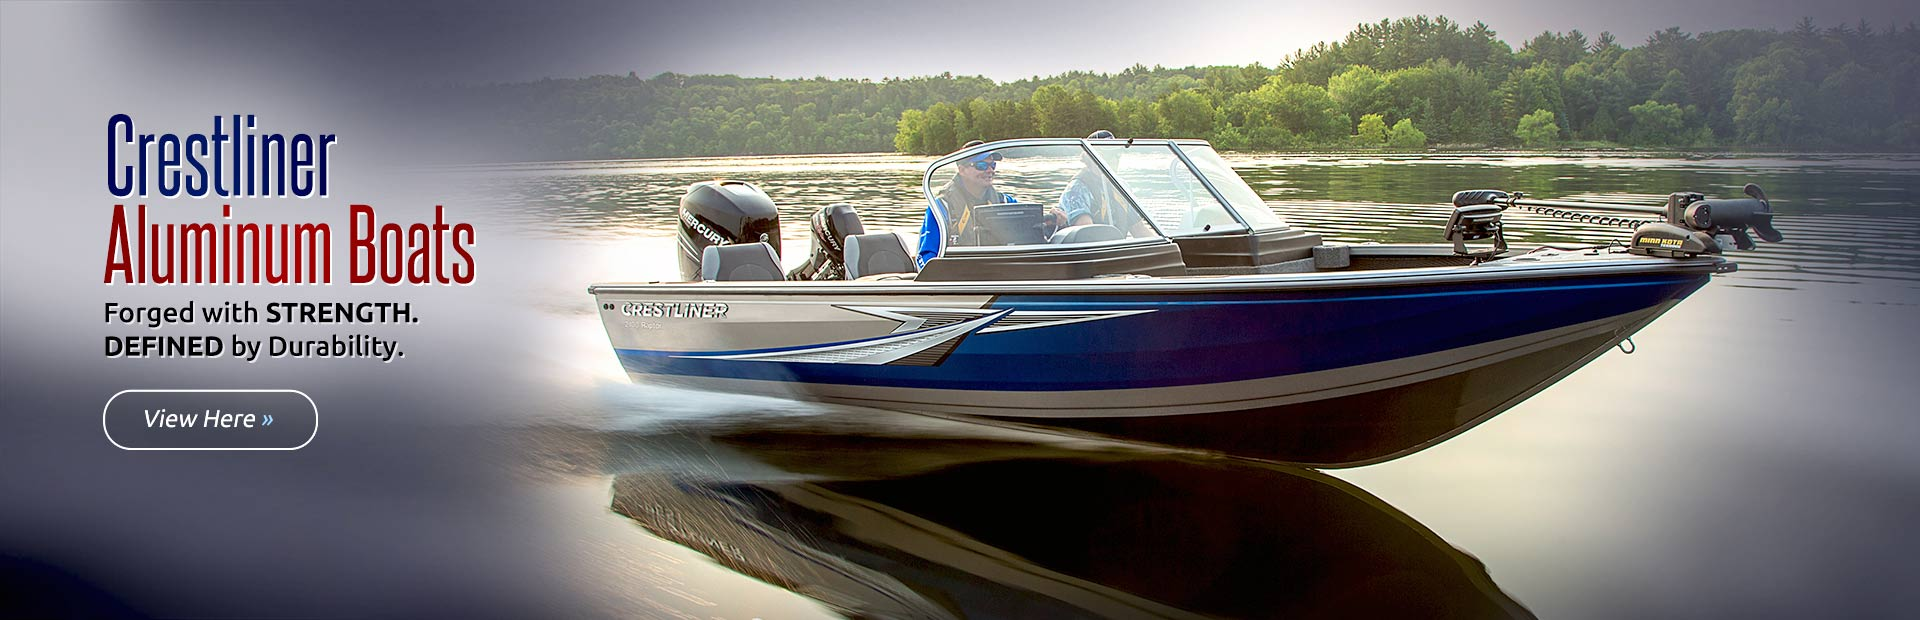 Crestliner Aluminum Boats: Click here to view the models.